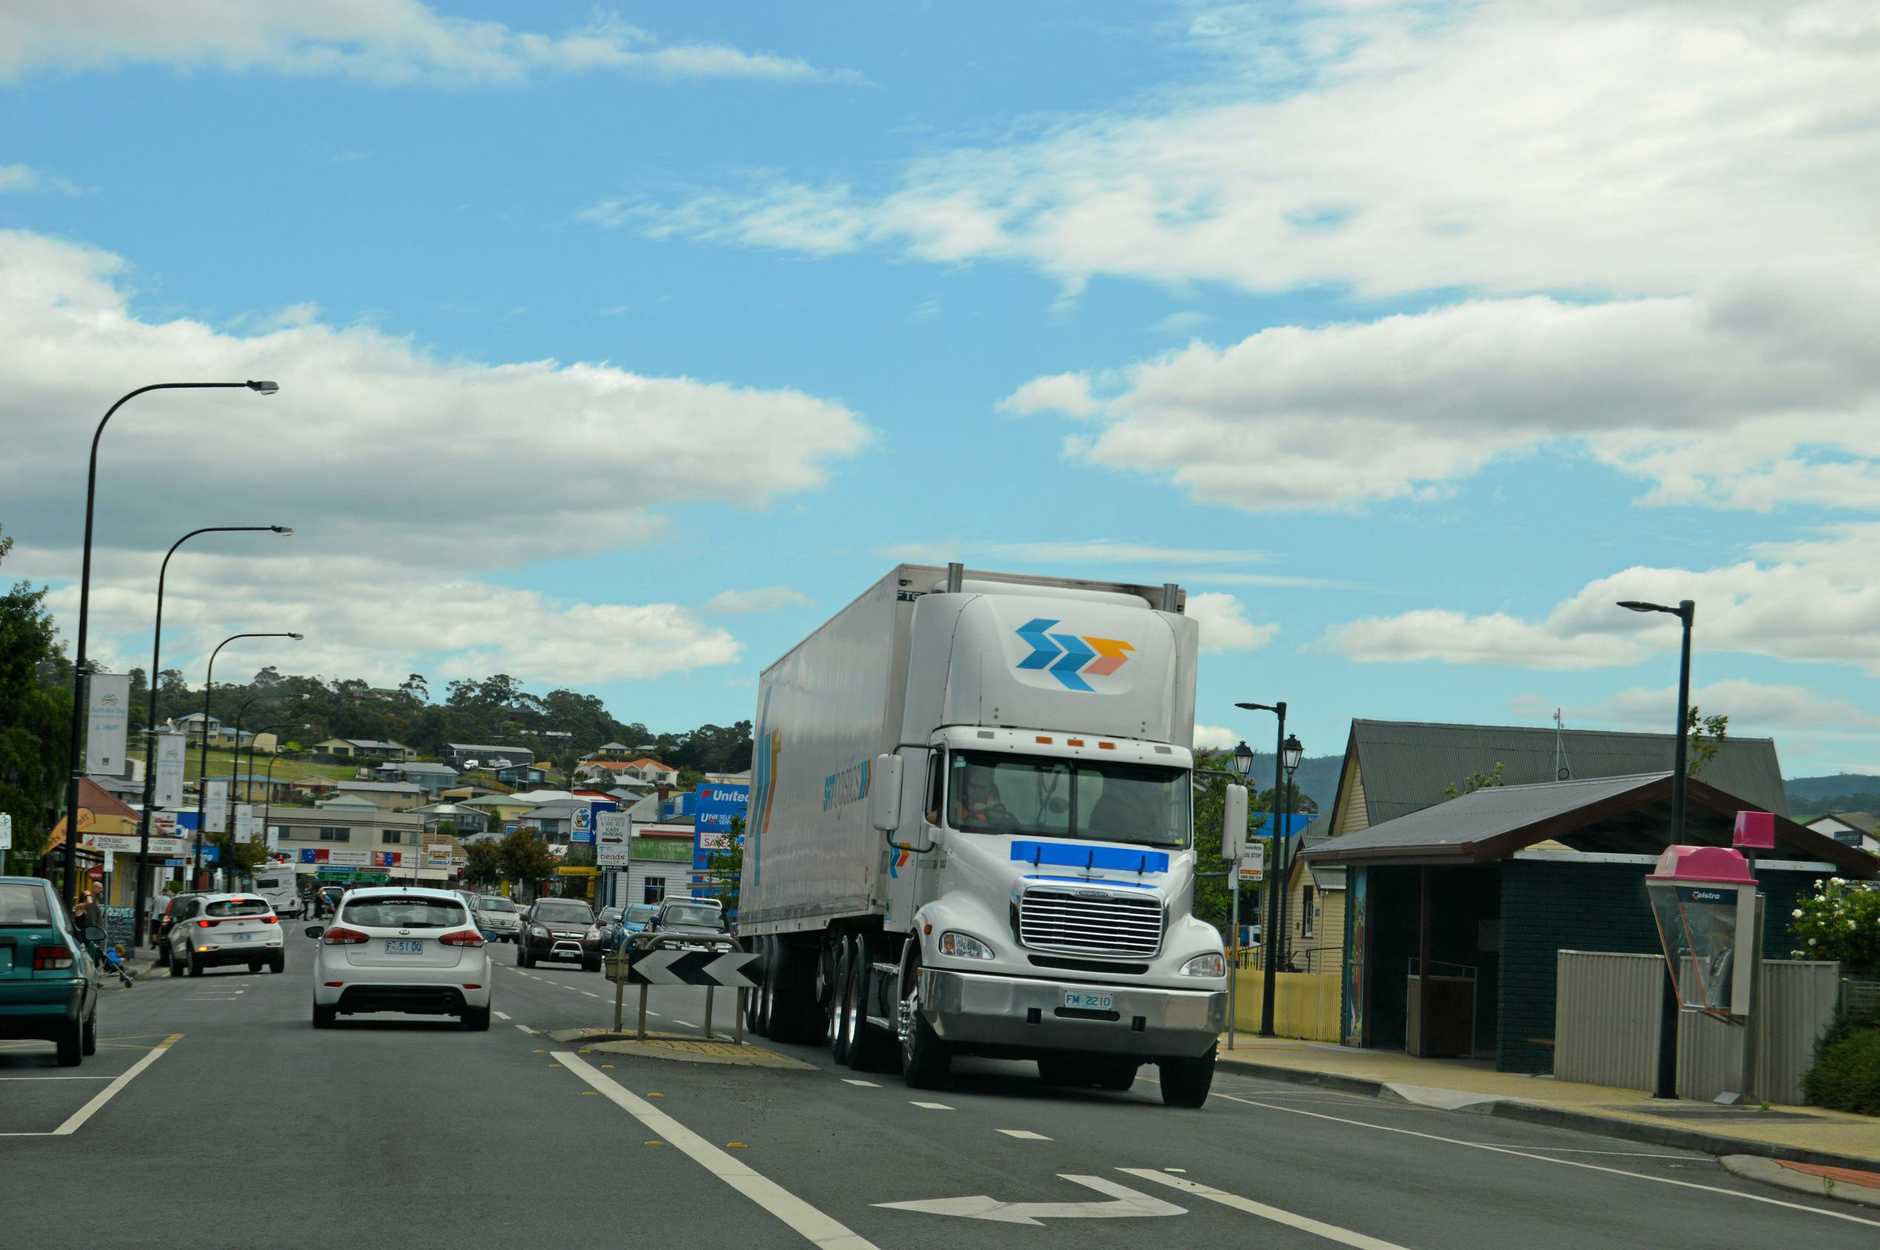 A truck travels through Sorell town after driving across the causeways.